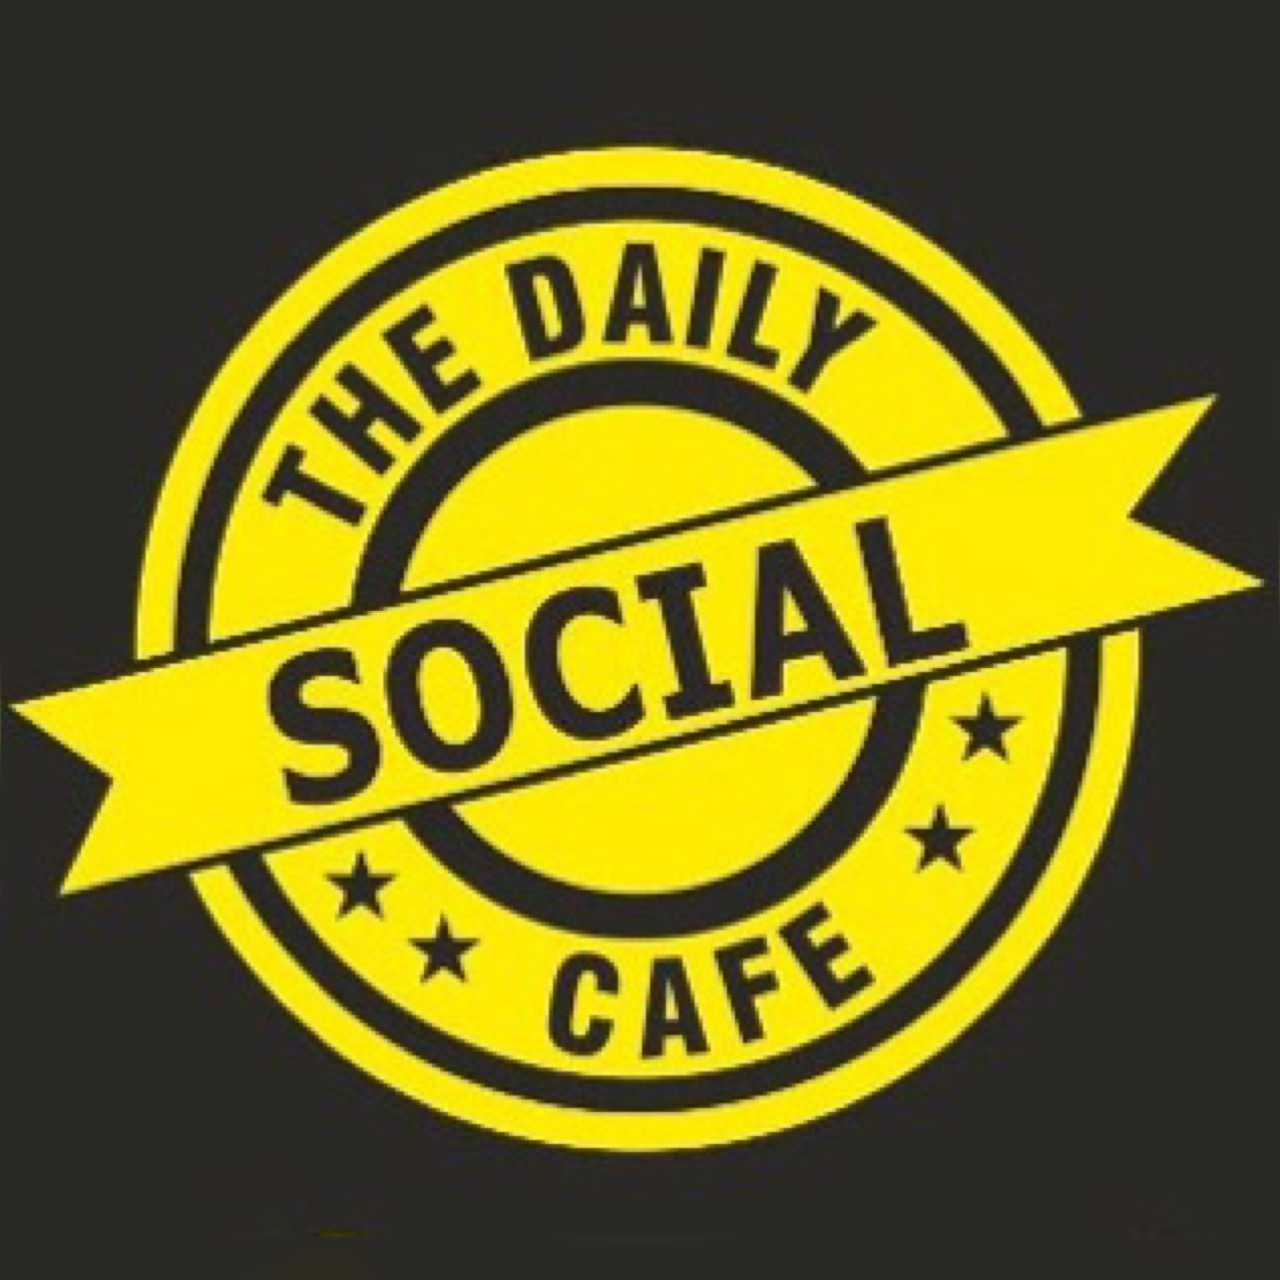 The Daily Social Cafe : Vijay Nagar, Vijay Nagar,New Delhi logo